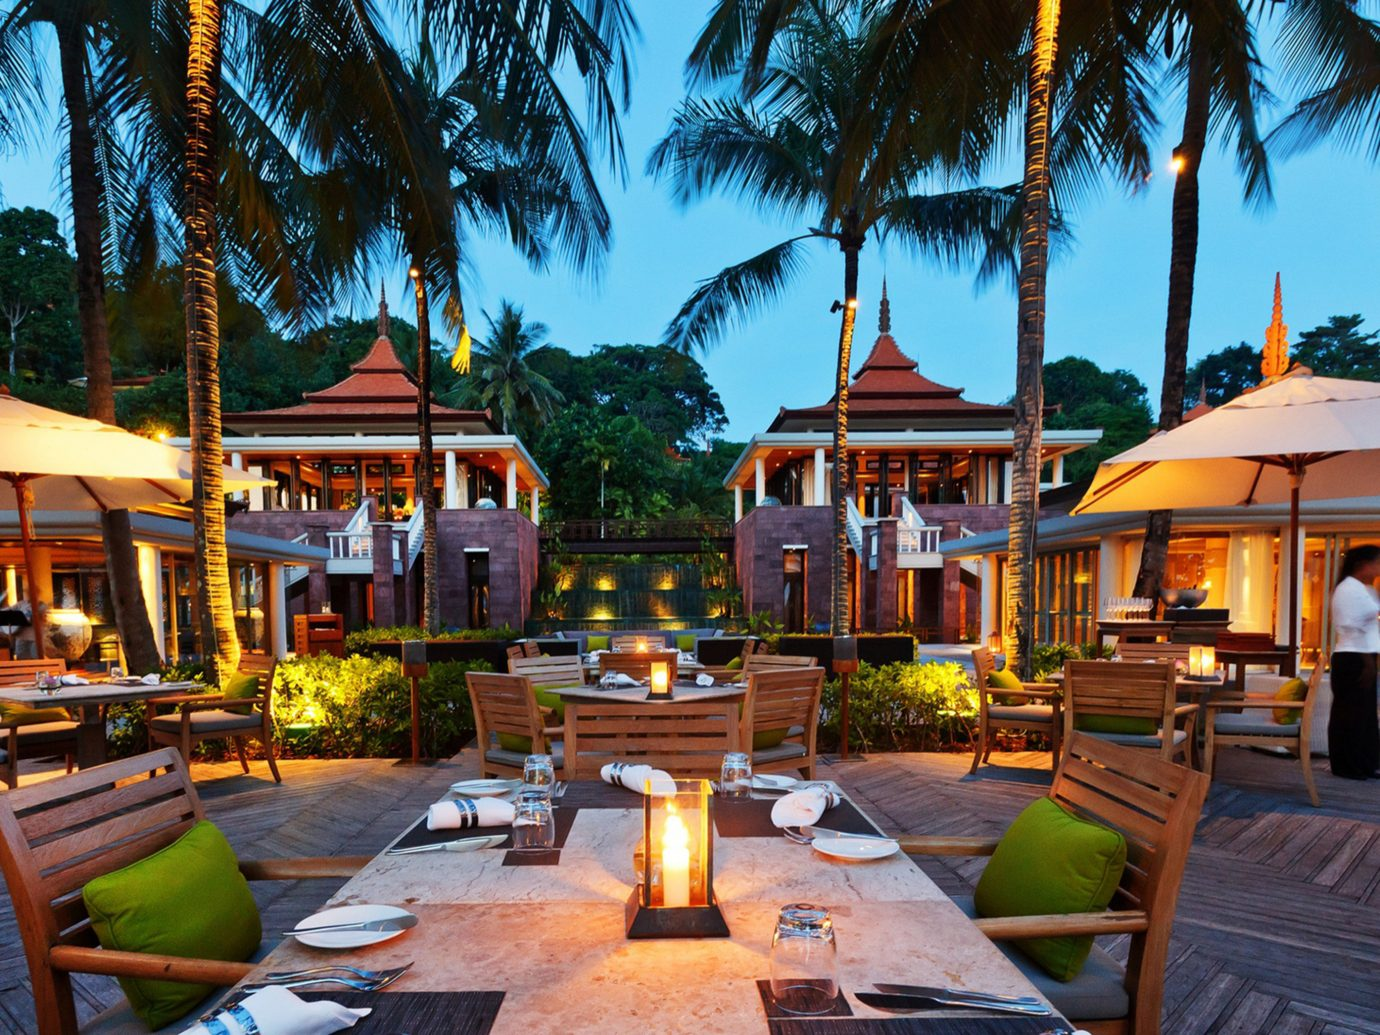 Bar Beach Dining Drink Eat Hotels Phuket Thailand Tropical tree outdoor leisure Resort estate vacation home restaurant real estate Village set lined furniture several